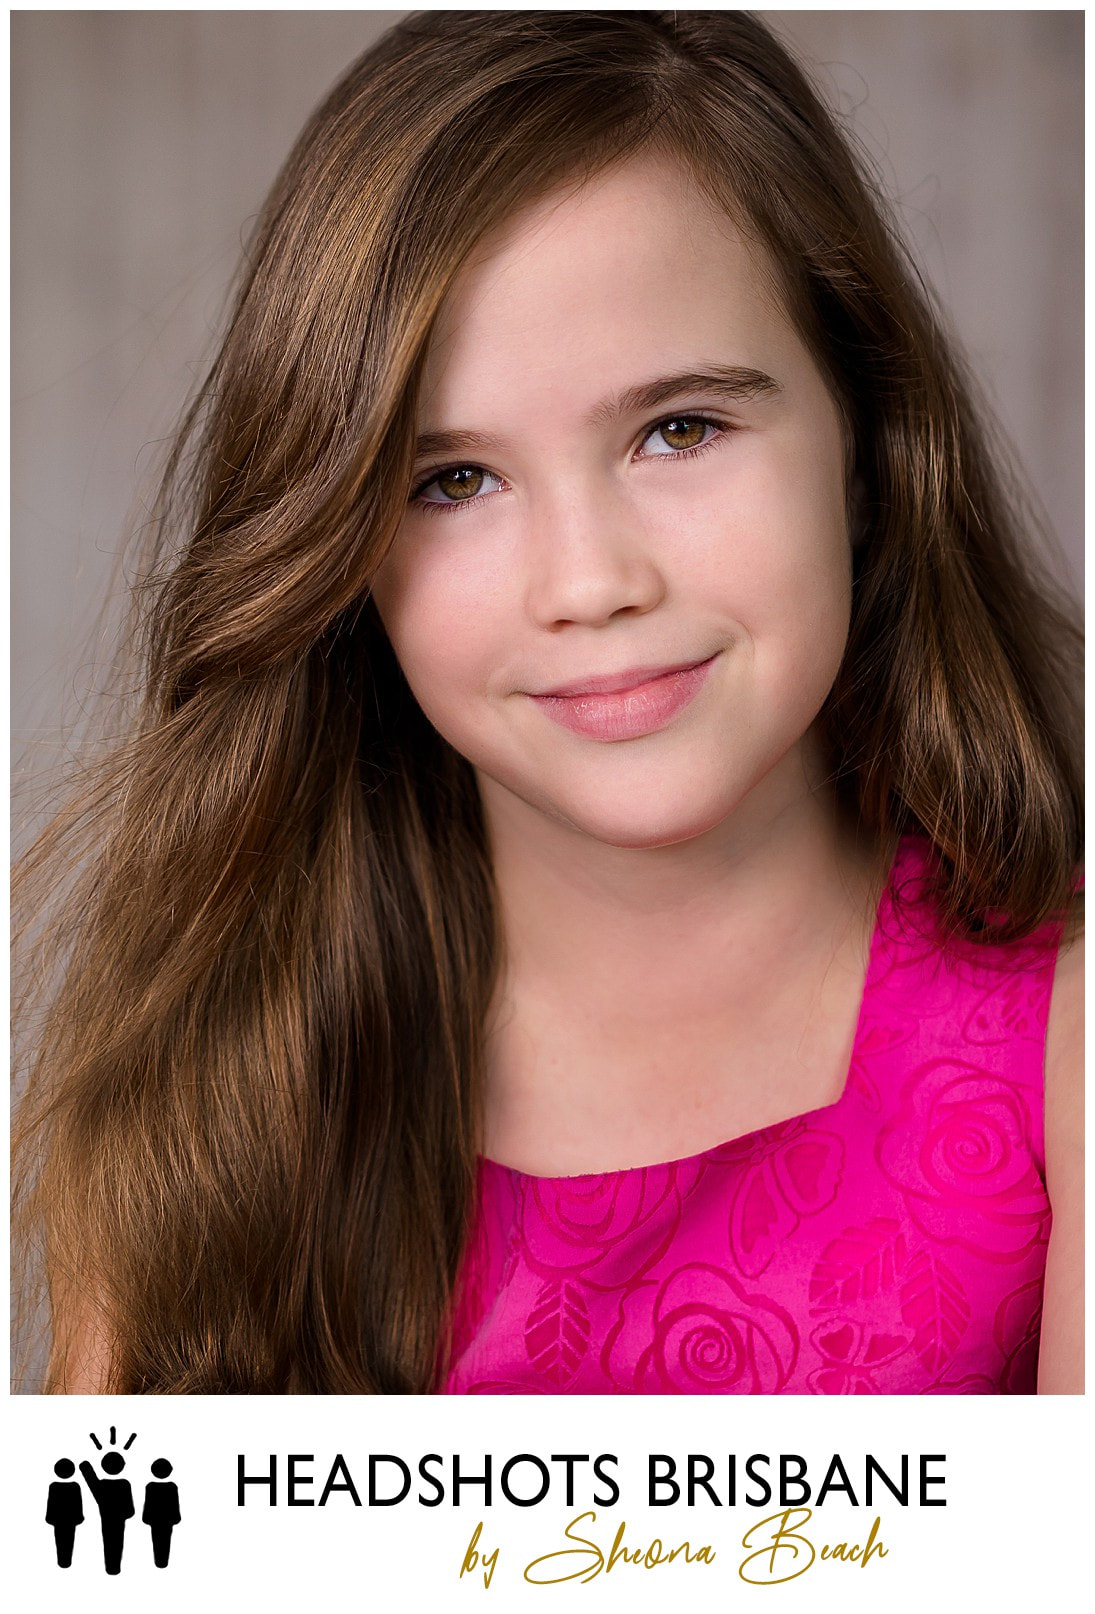 Photographer for child actor headshots Brisbane